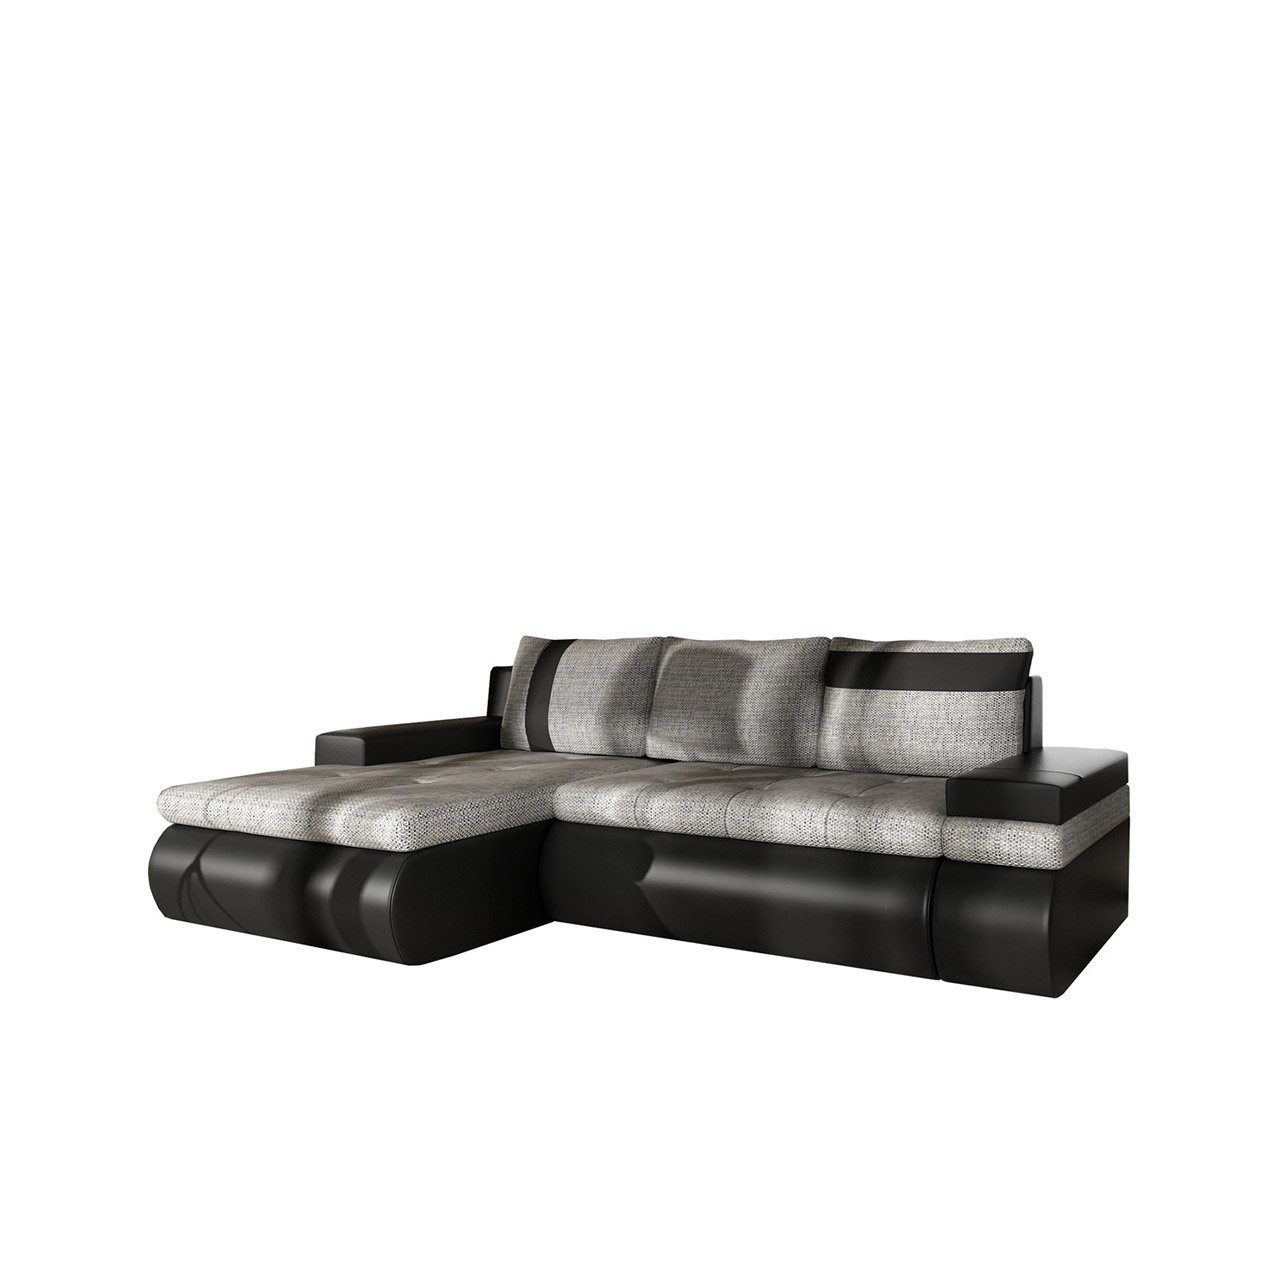 Ecksofa Otto Mini Mit Bettfunktion X Moebel24